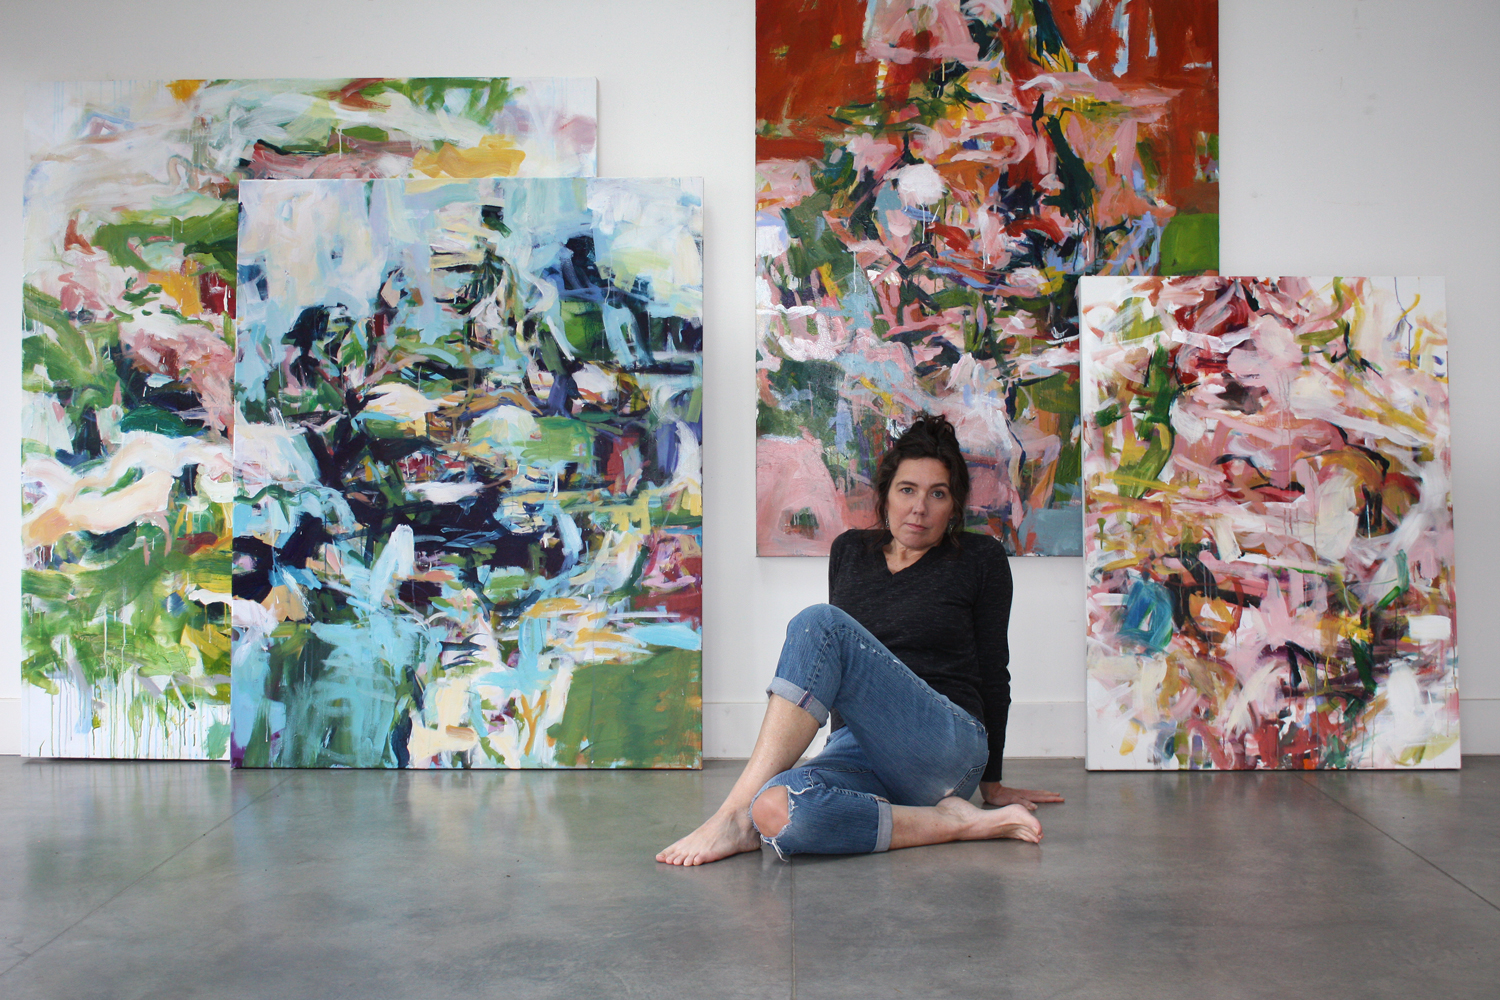 karen-silve-in-studio-with-vulnerability-abstract-paintings.jpg